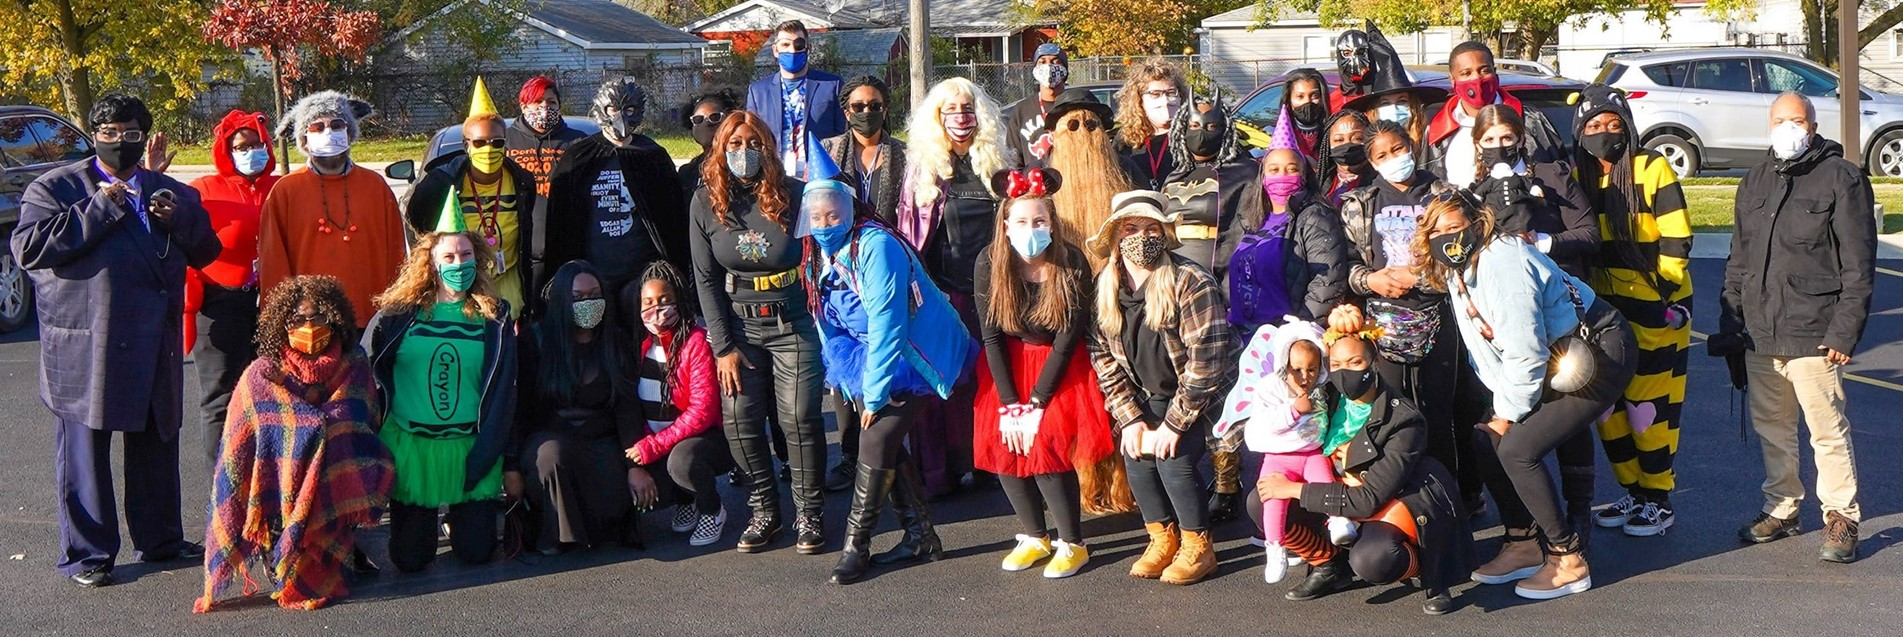 Jesse White Staff pose after giving treats to their students during Trunk or Treat festivities